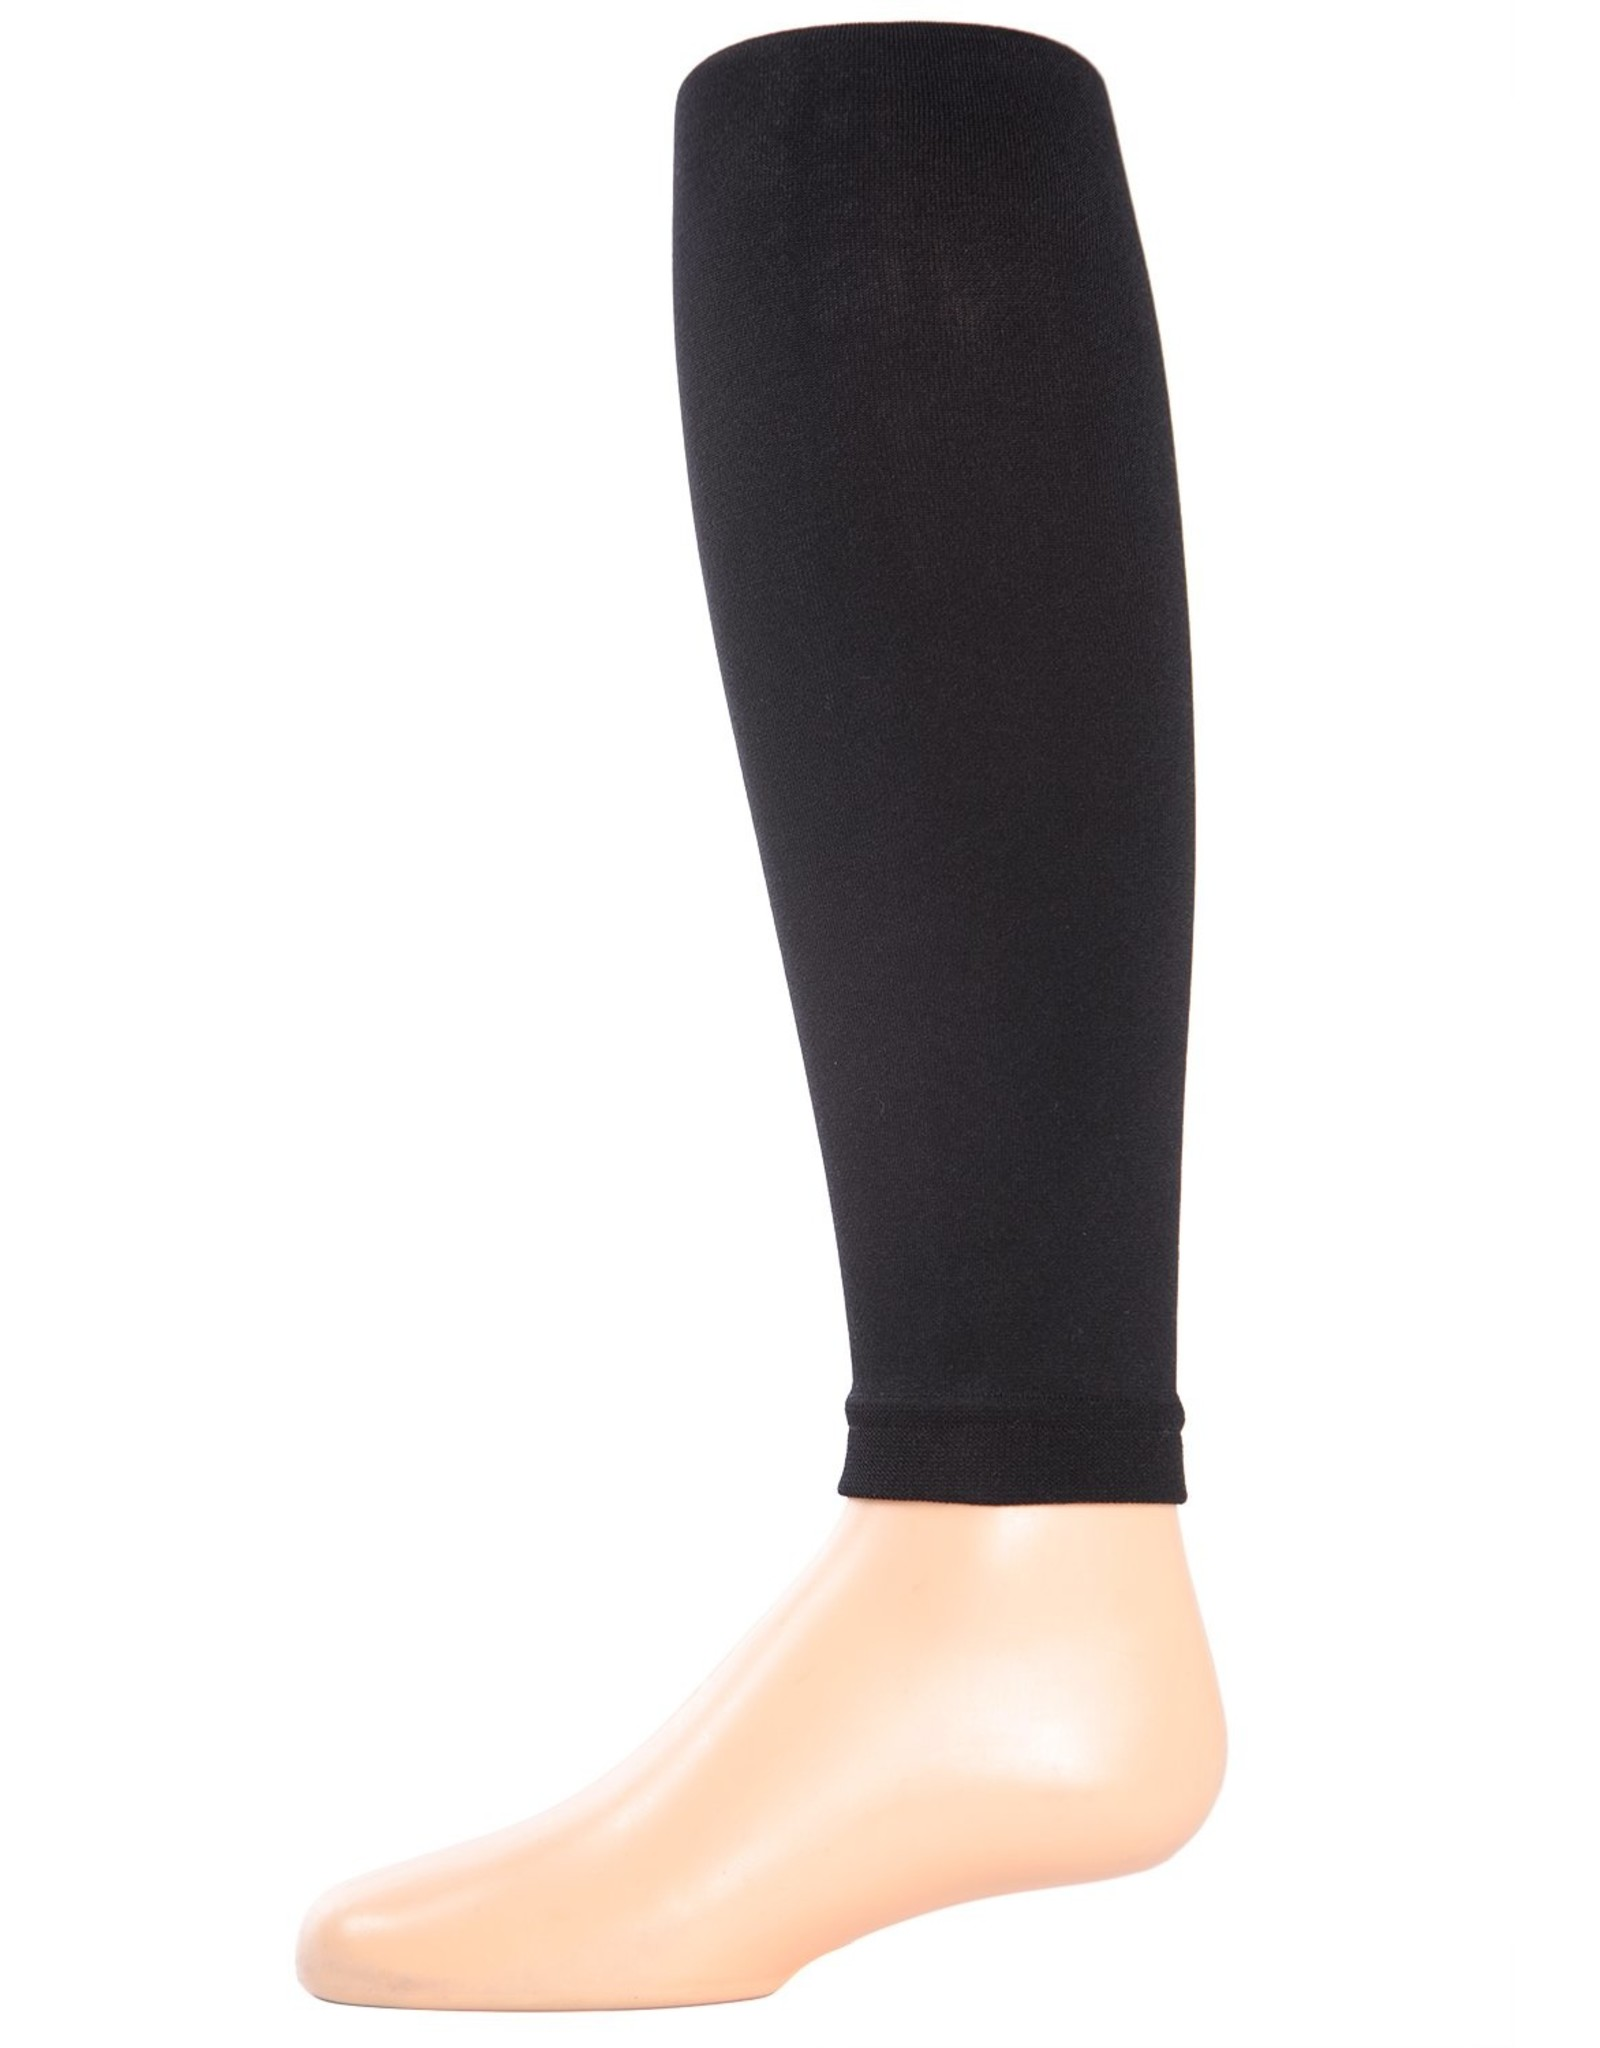 Memoi Memoi Girls Opaque Footless Tights